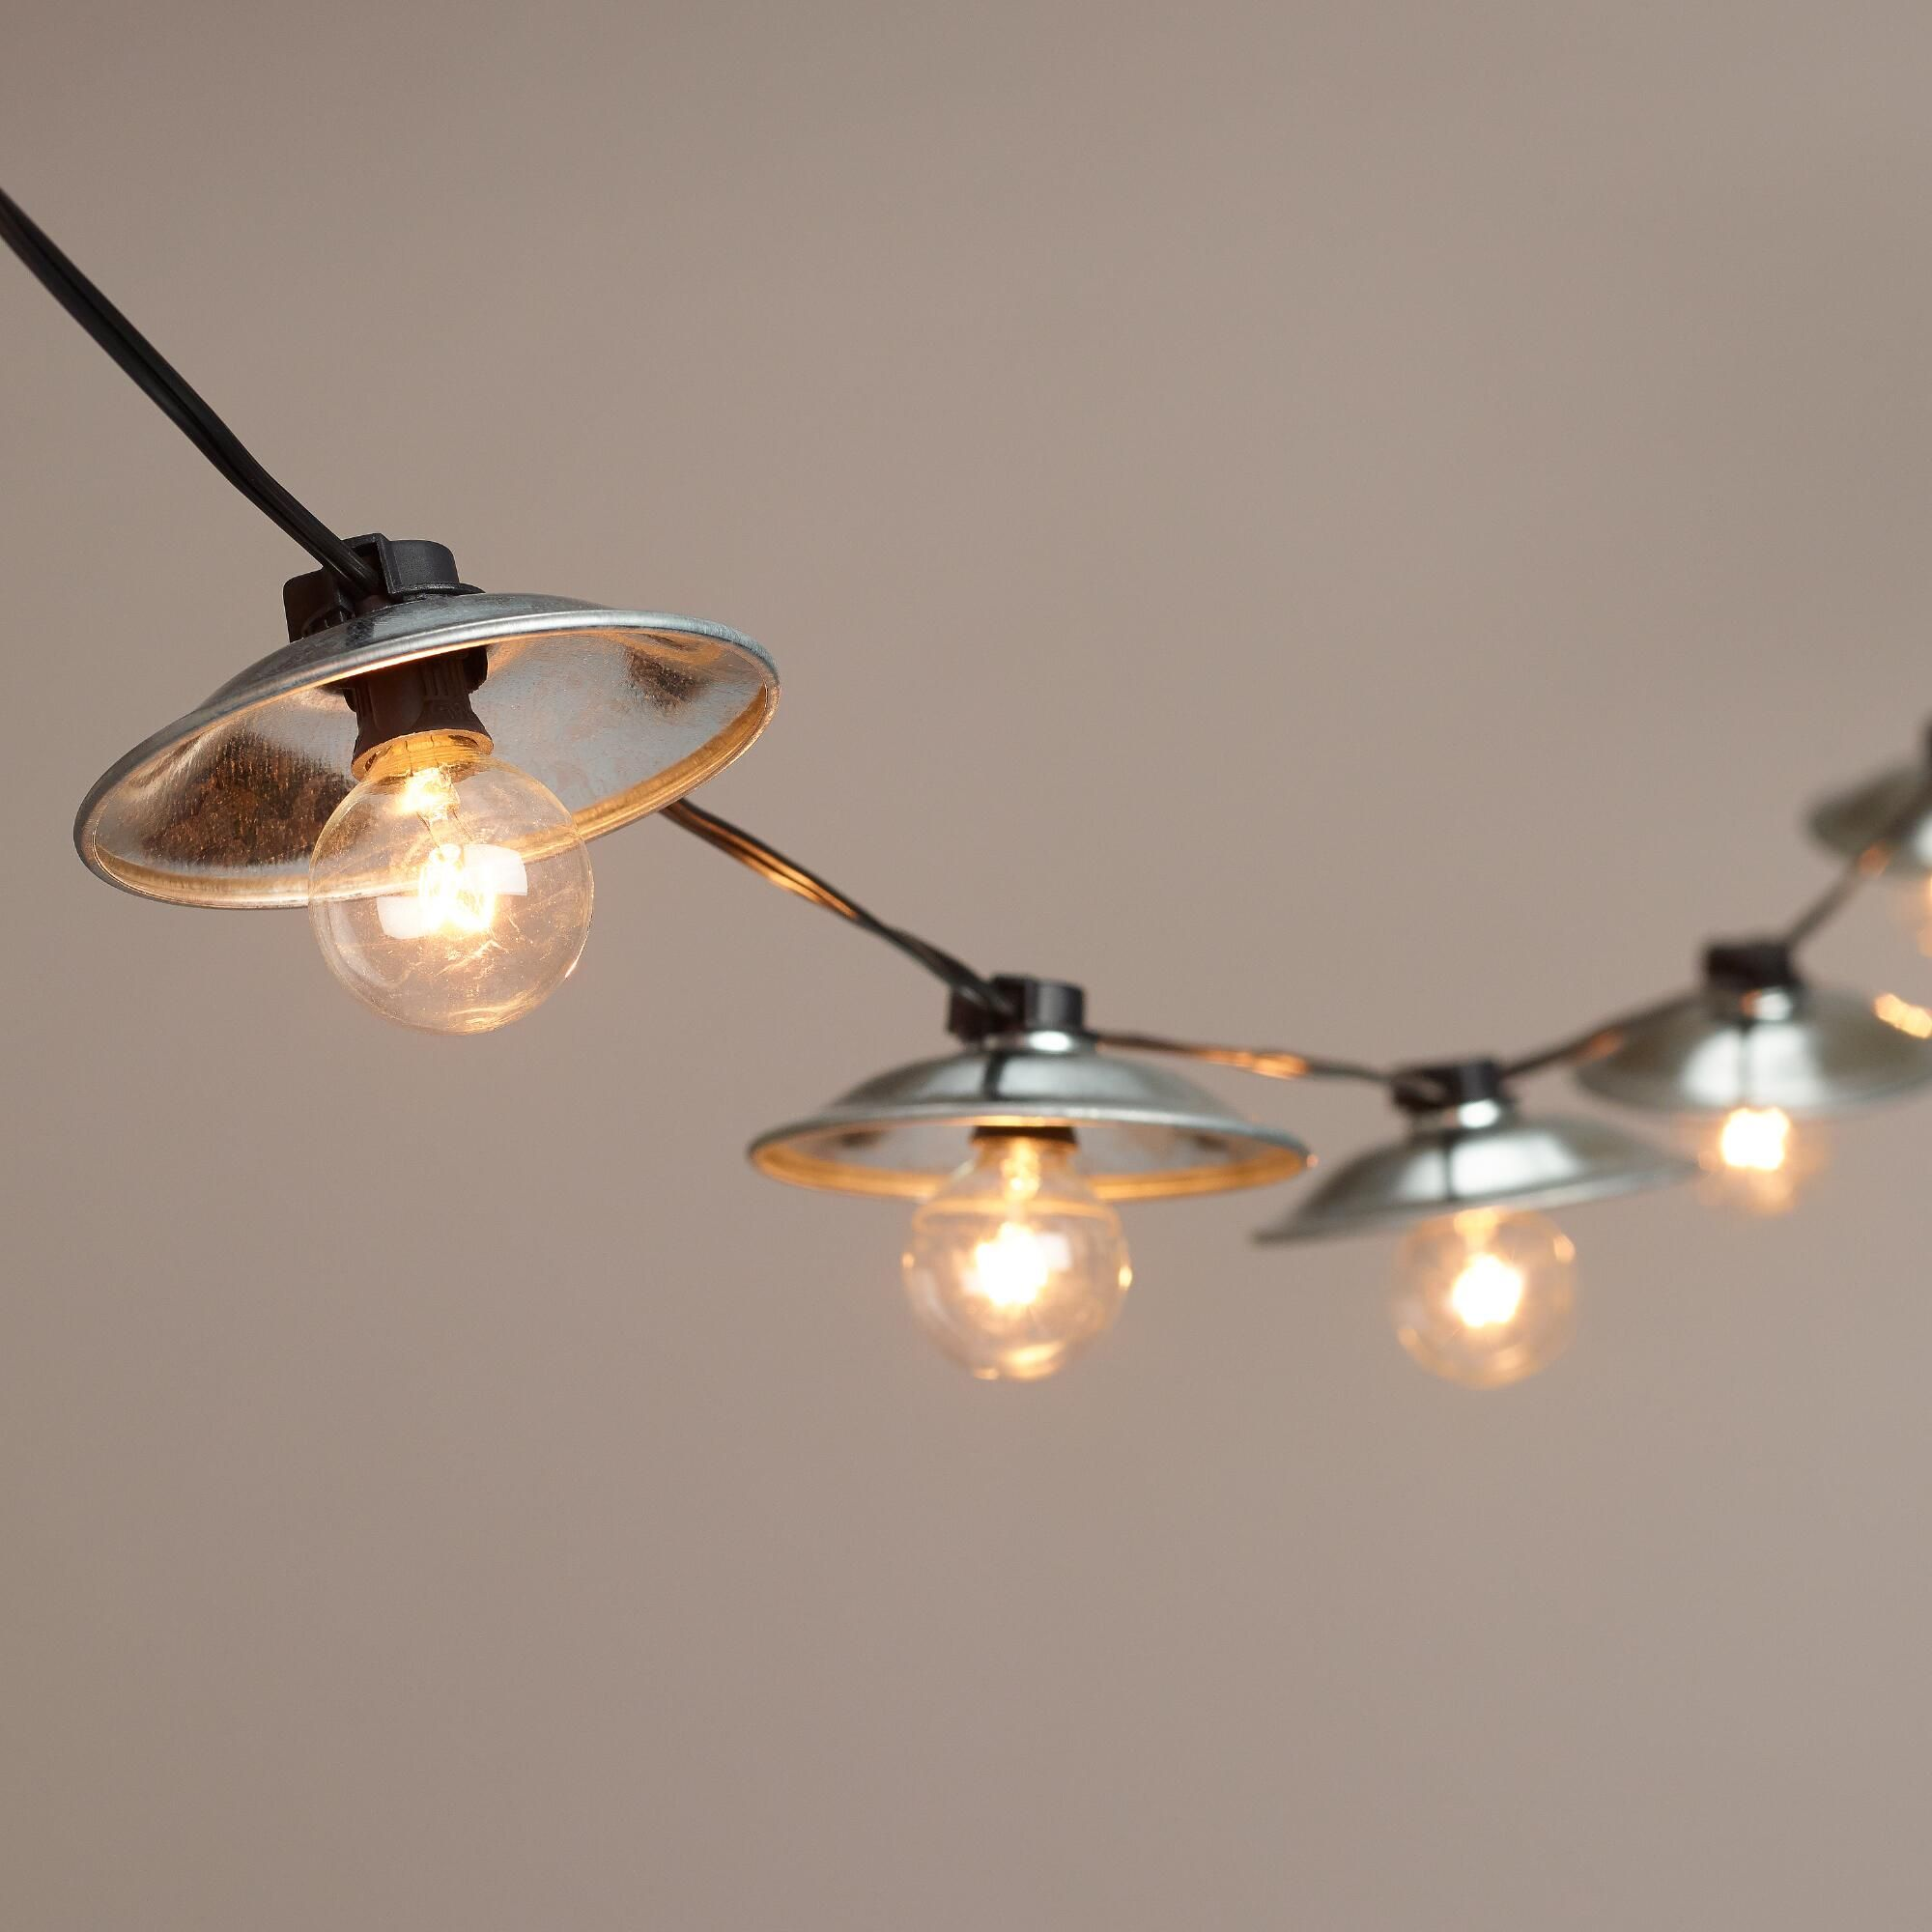 Inspired by french caf patio lights our exclusive cafe 10 bulb inspired by french caf patio lights our exclusive cafe 10 bulb string lights feature audiocablefo